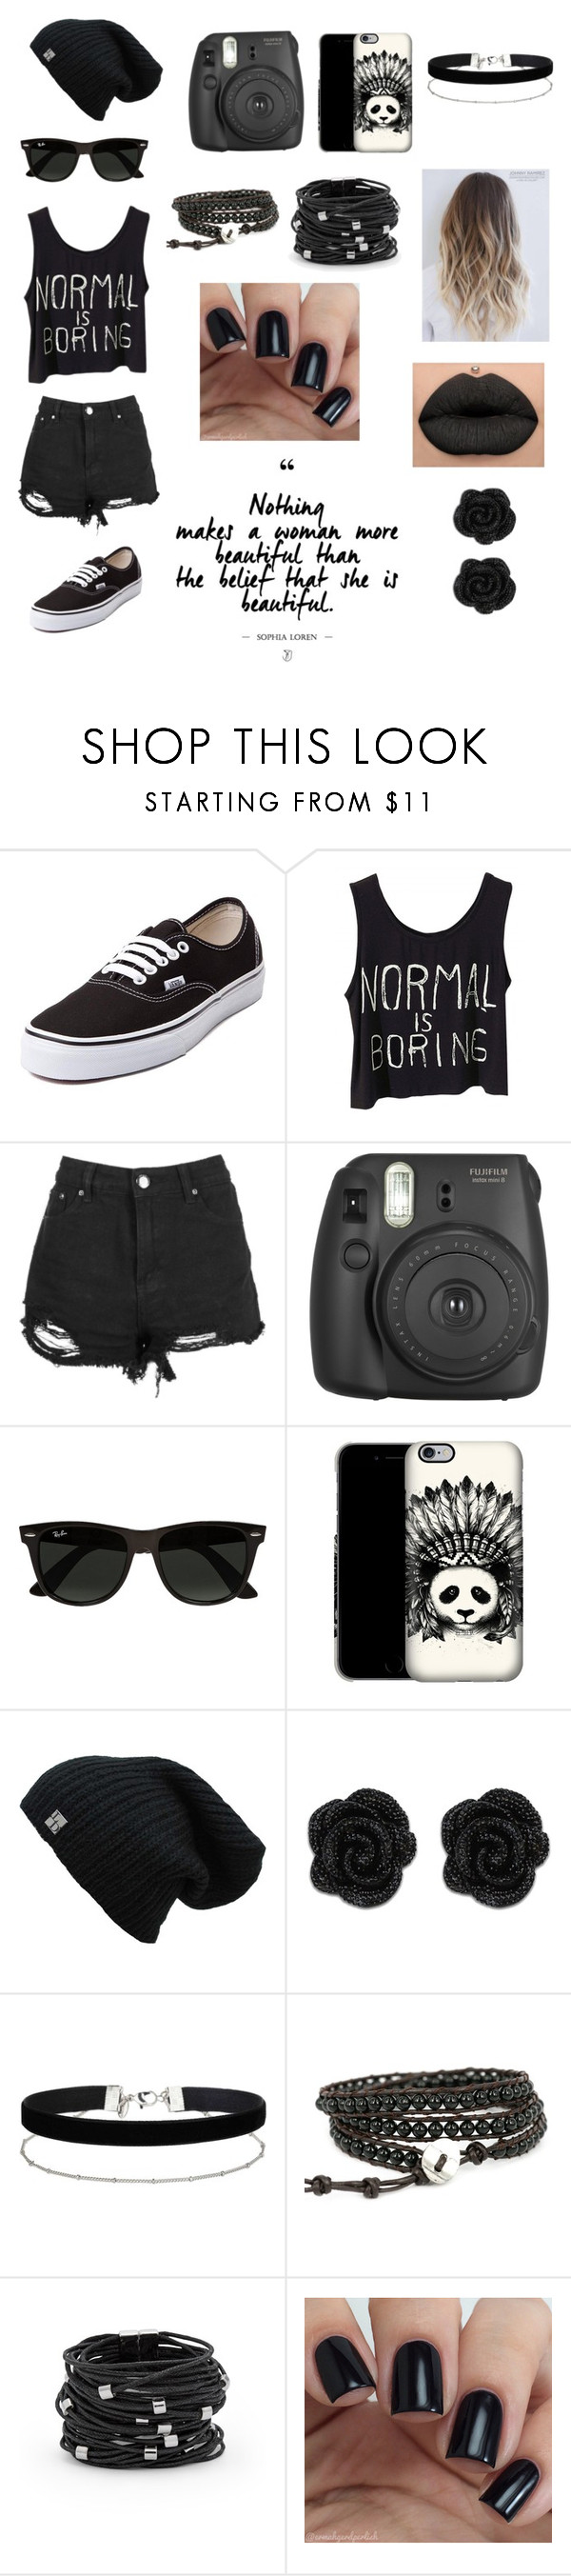 """""""Black is my color"""" by majotadussan ❤ liked on Polyvore featuring Vans, Ray-Ban, Miss Selfridge and Chico's"""